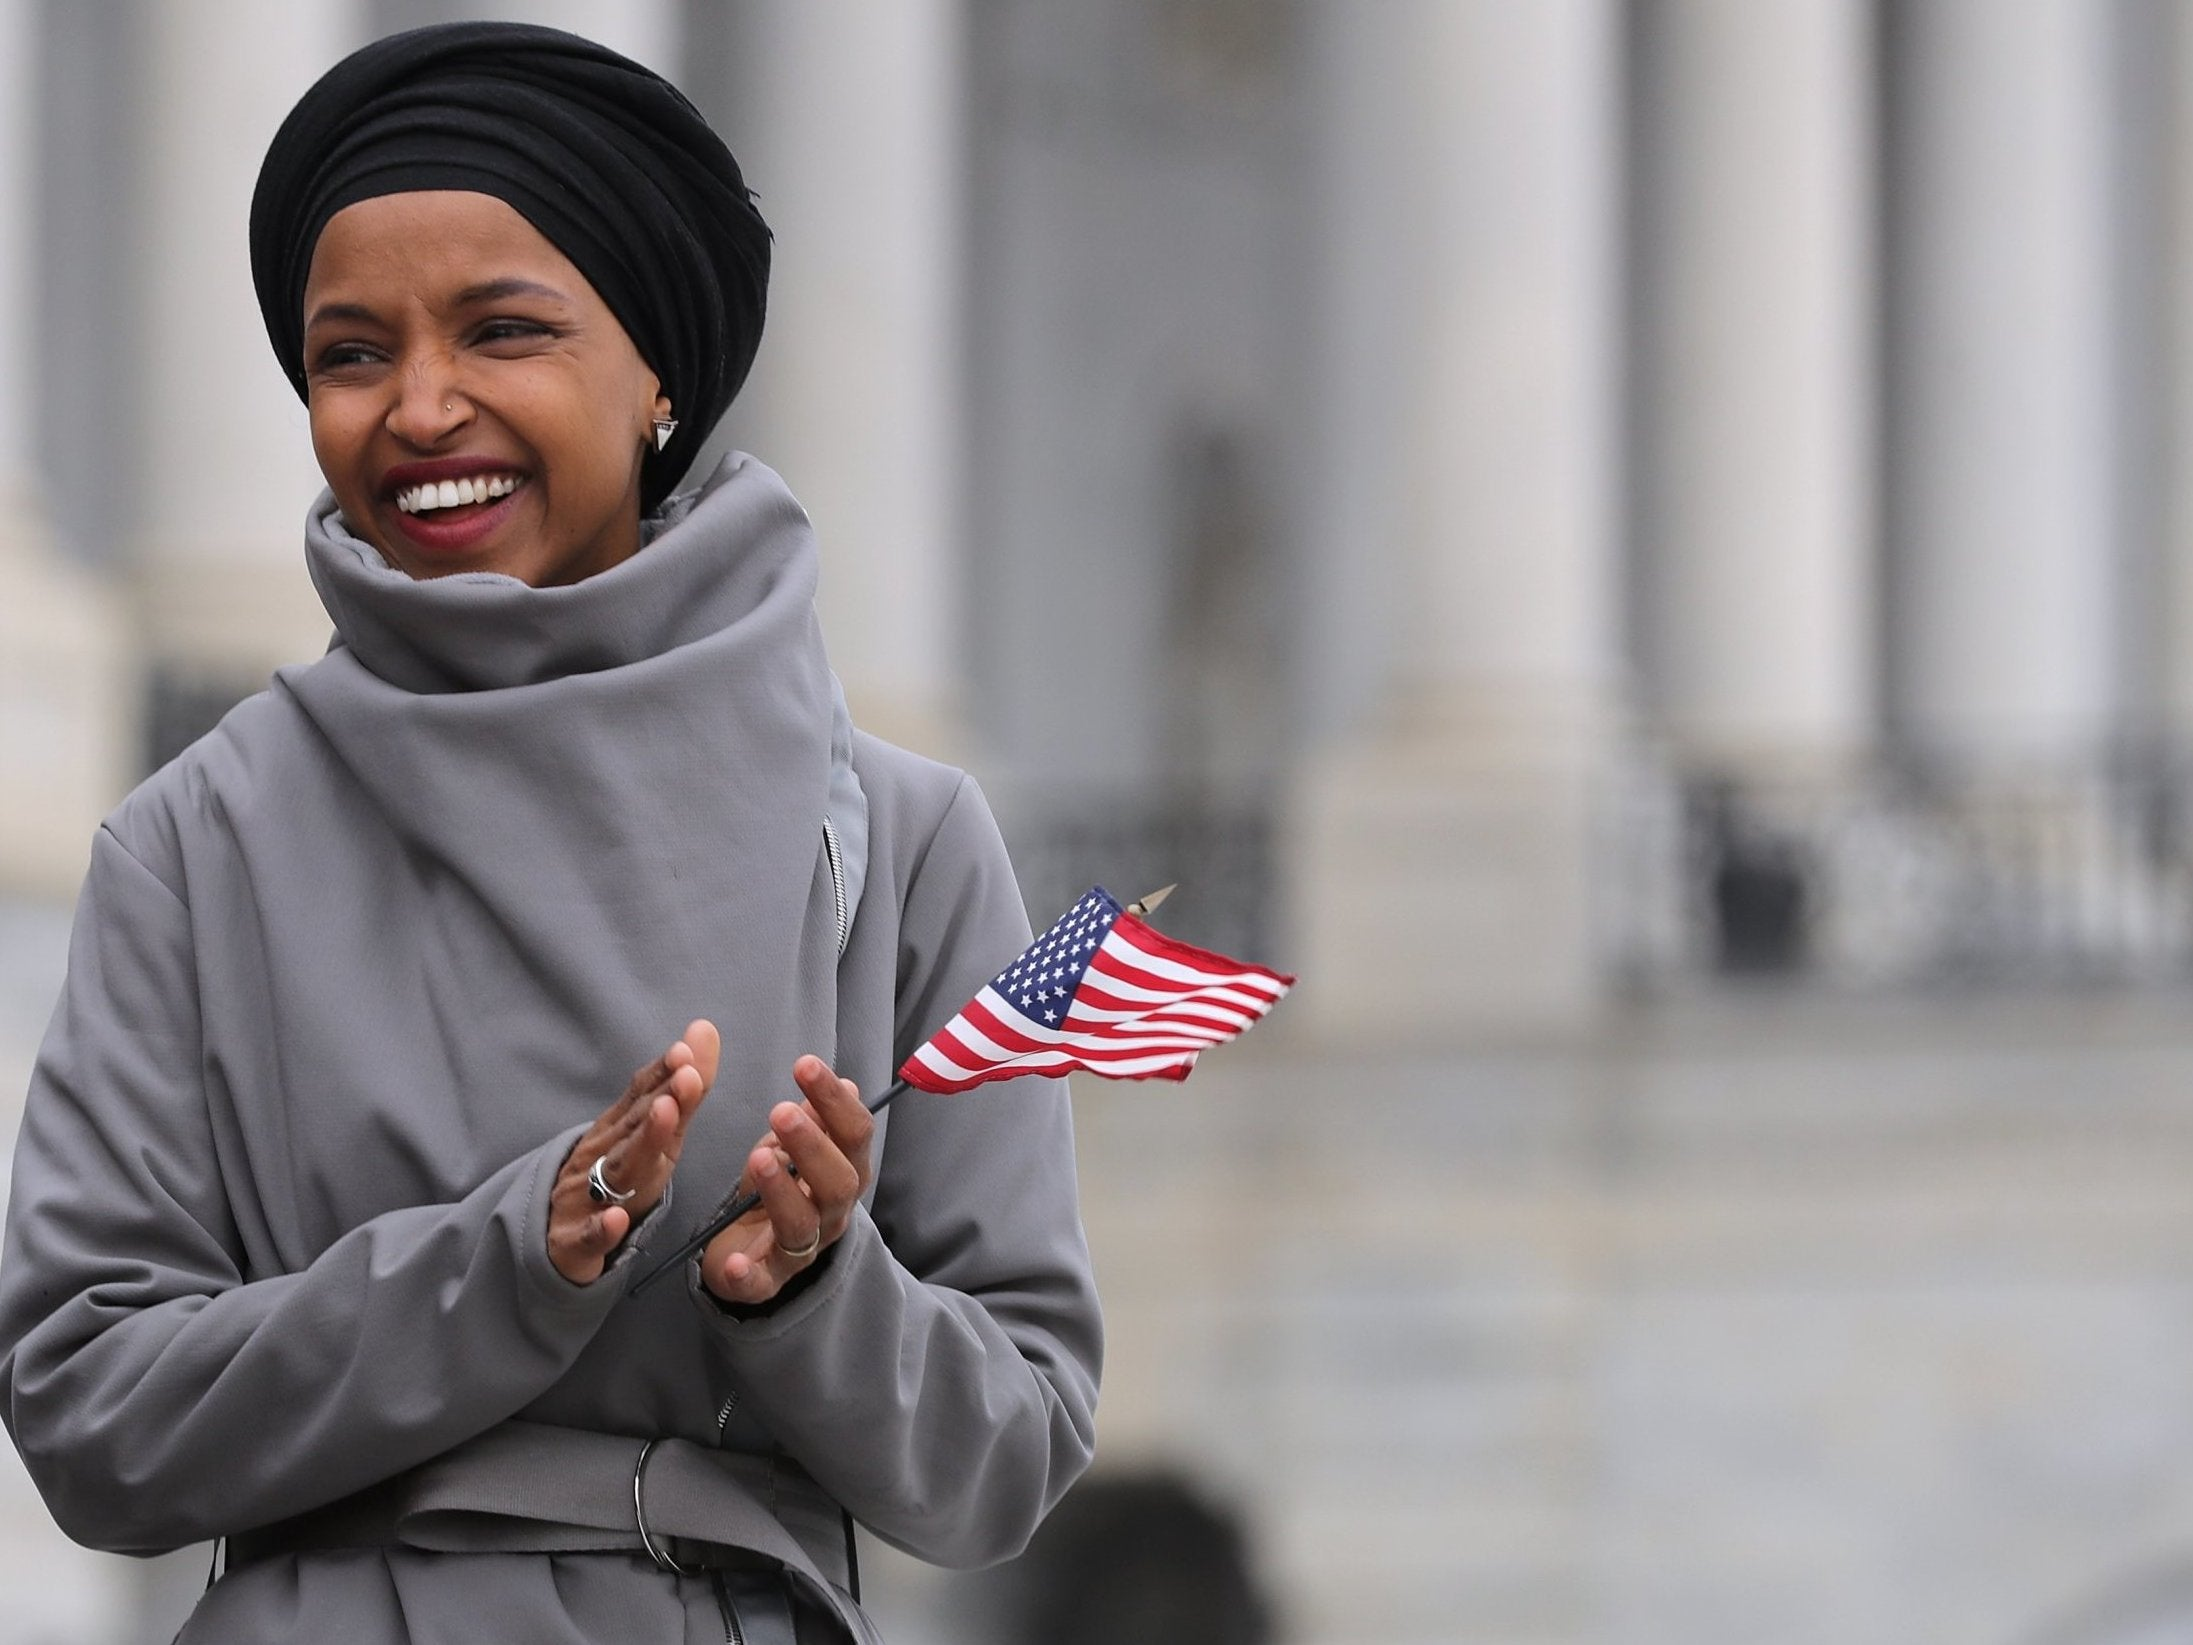 Please stop assuming I vote Democrat because I'm a Muslim woman who wears the hijab